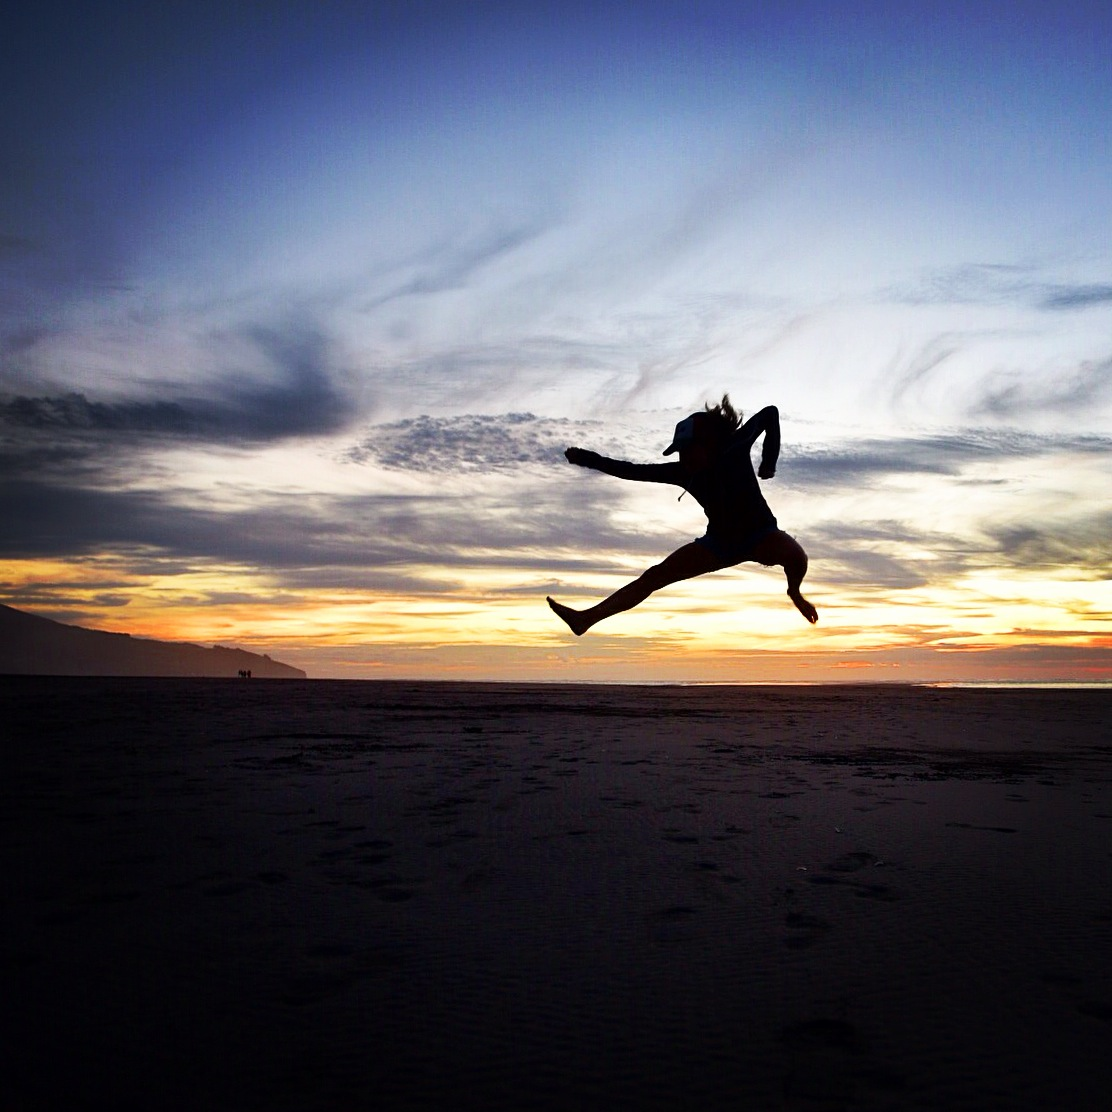 raglan_candice_sunset_ninja_kick.JPG